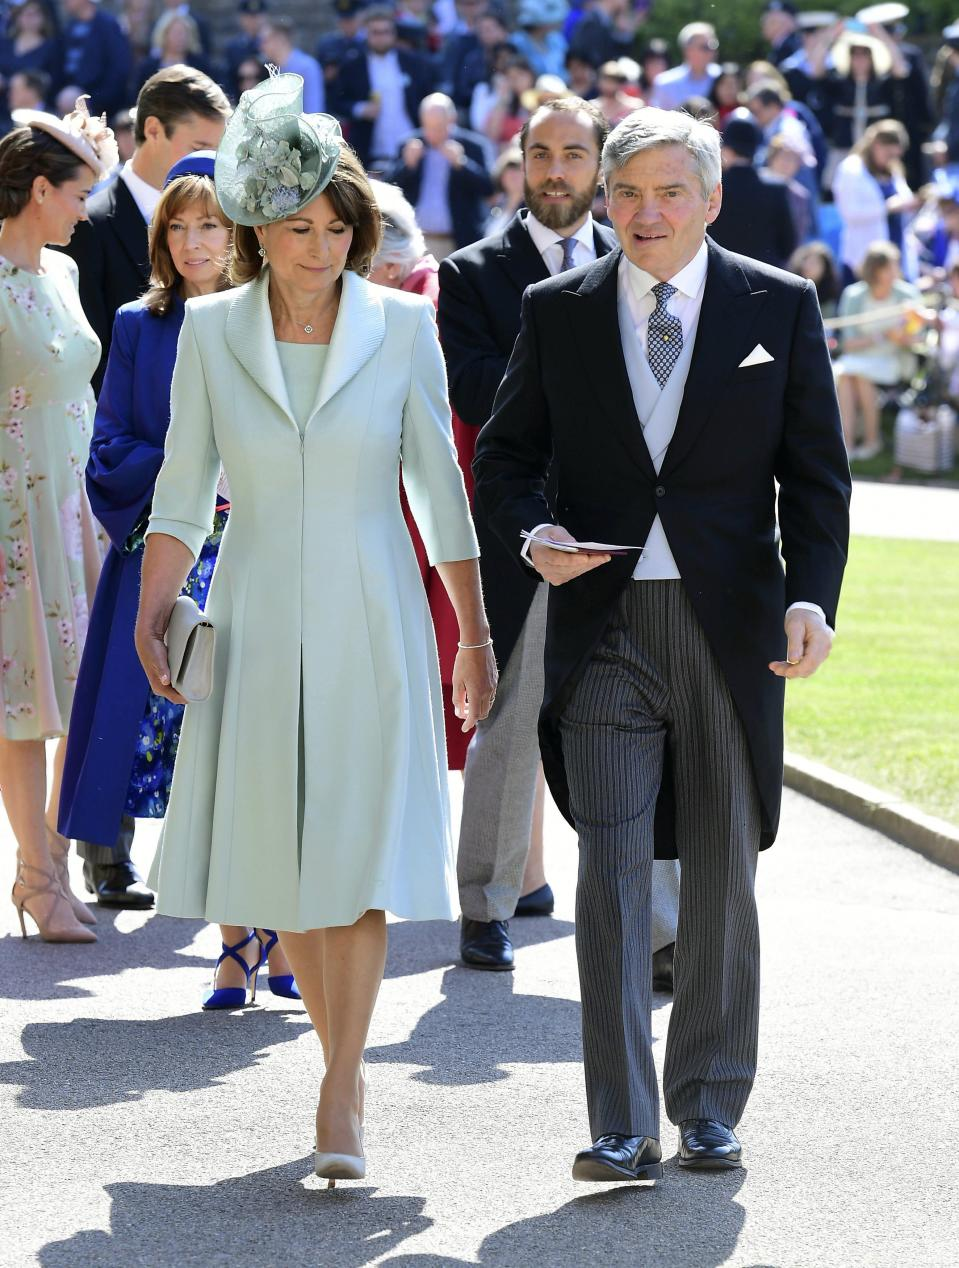 Kate's parents - Michael and Carole Middleton.